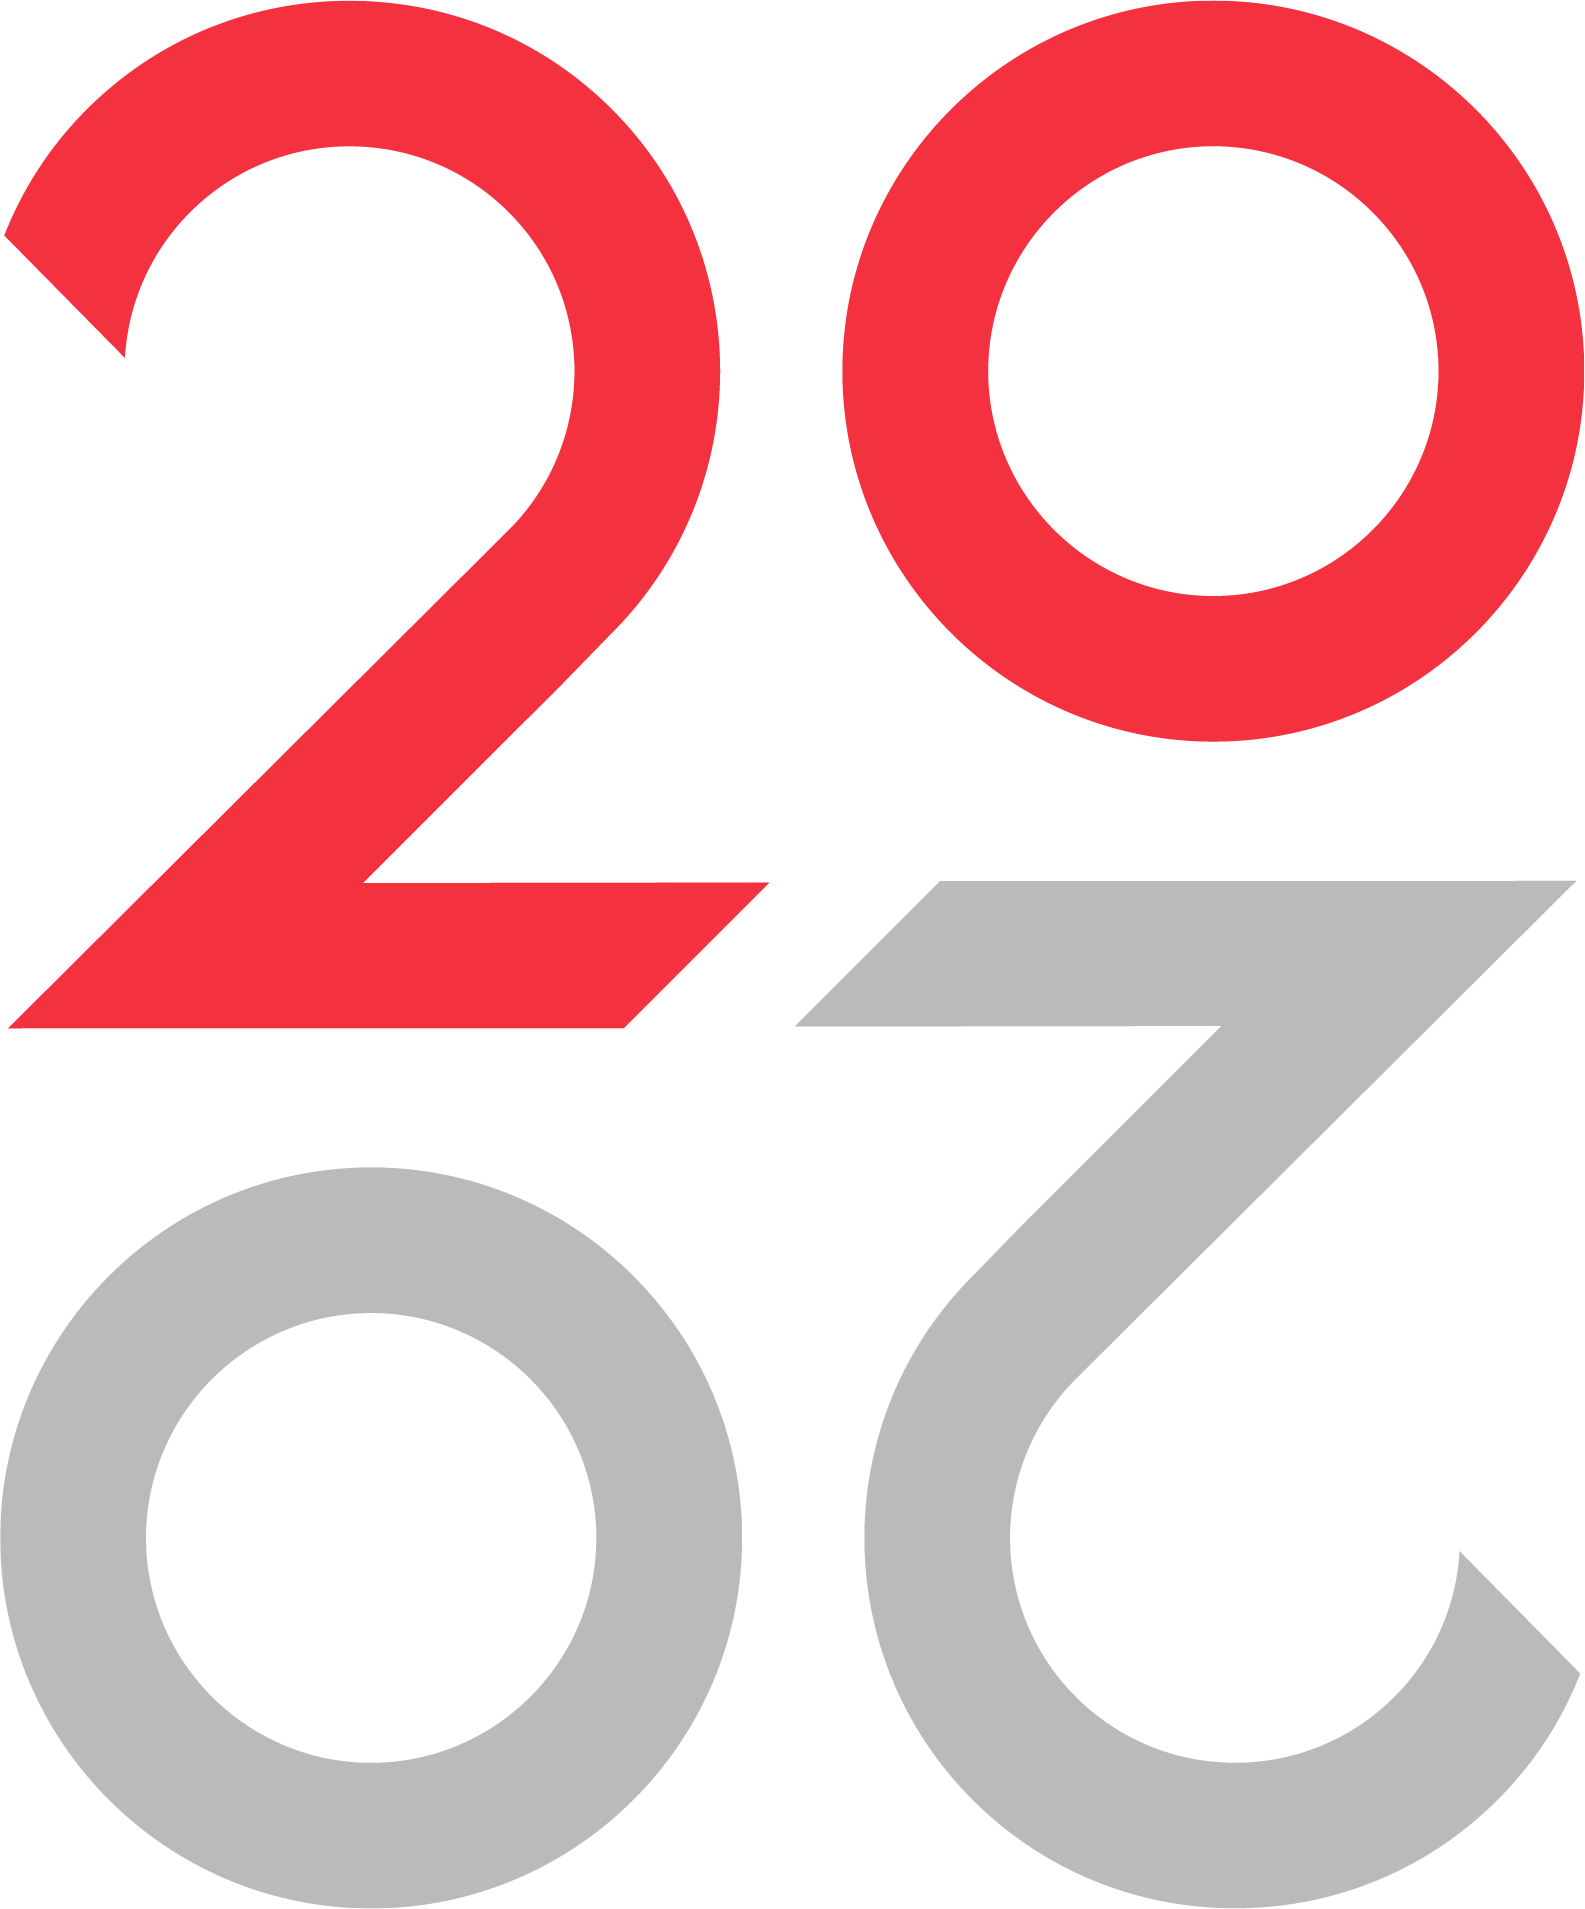 2020 - Headline sponsor for Power of Projects 2020 - Edinburgh